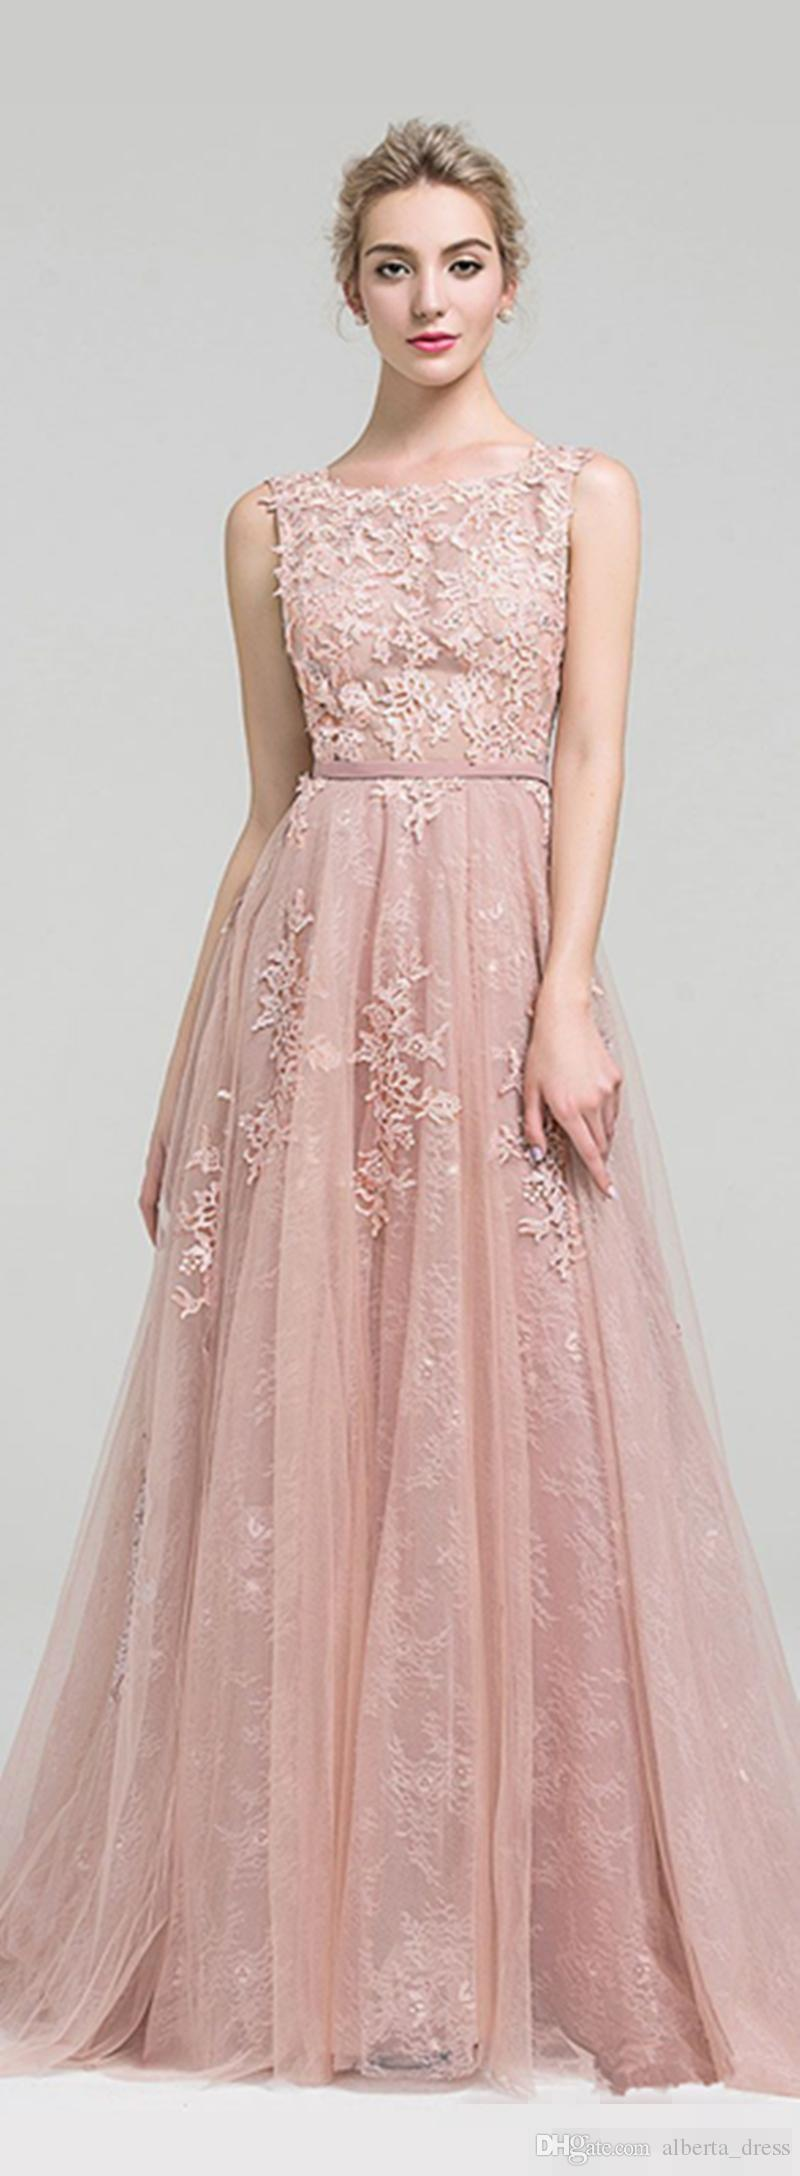 2020 Long Prom Dresses A Line Appliques Lace Sleeveless With Belt Blush Pink Formal Evening Gowns Prom Dress Party dress